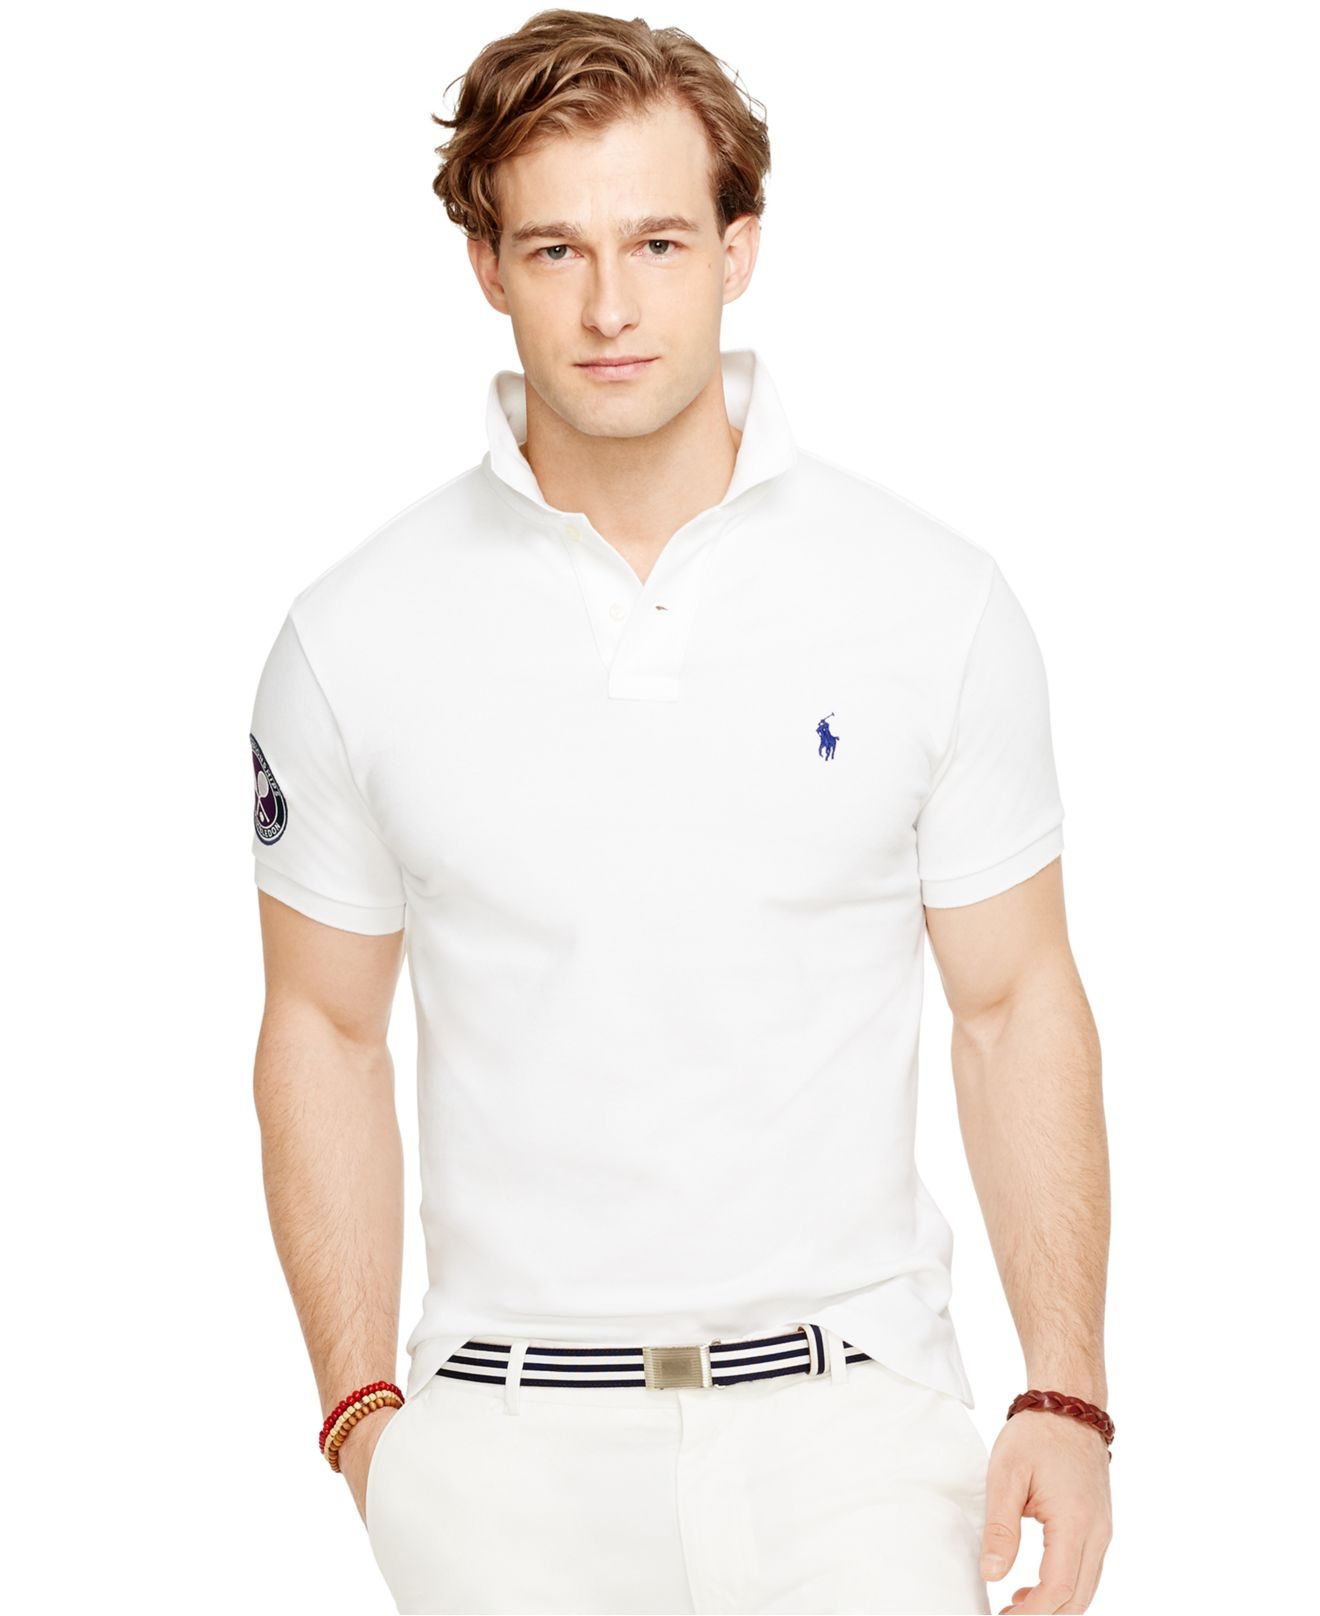 Lyst Polo Ralph Lauren Wimbledon Custom Fit Polo Shirt In White